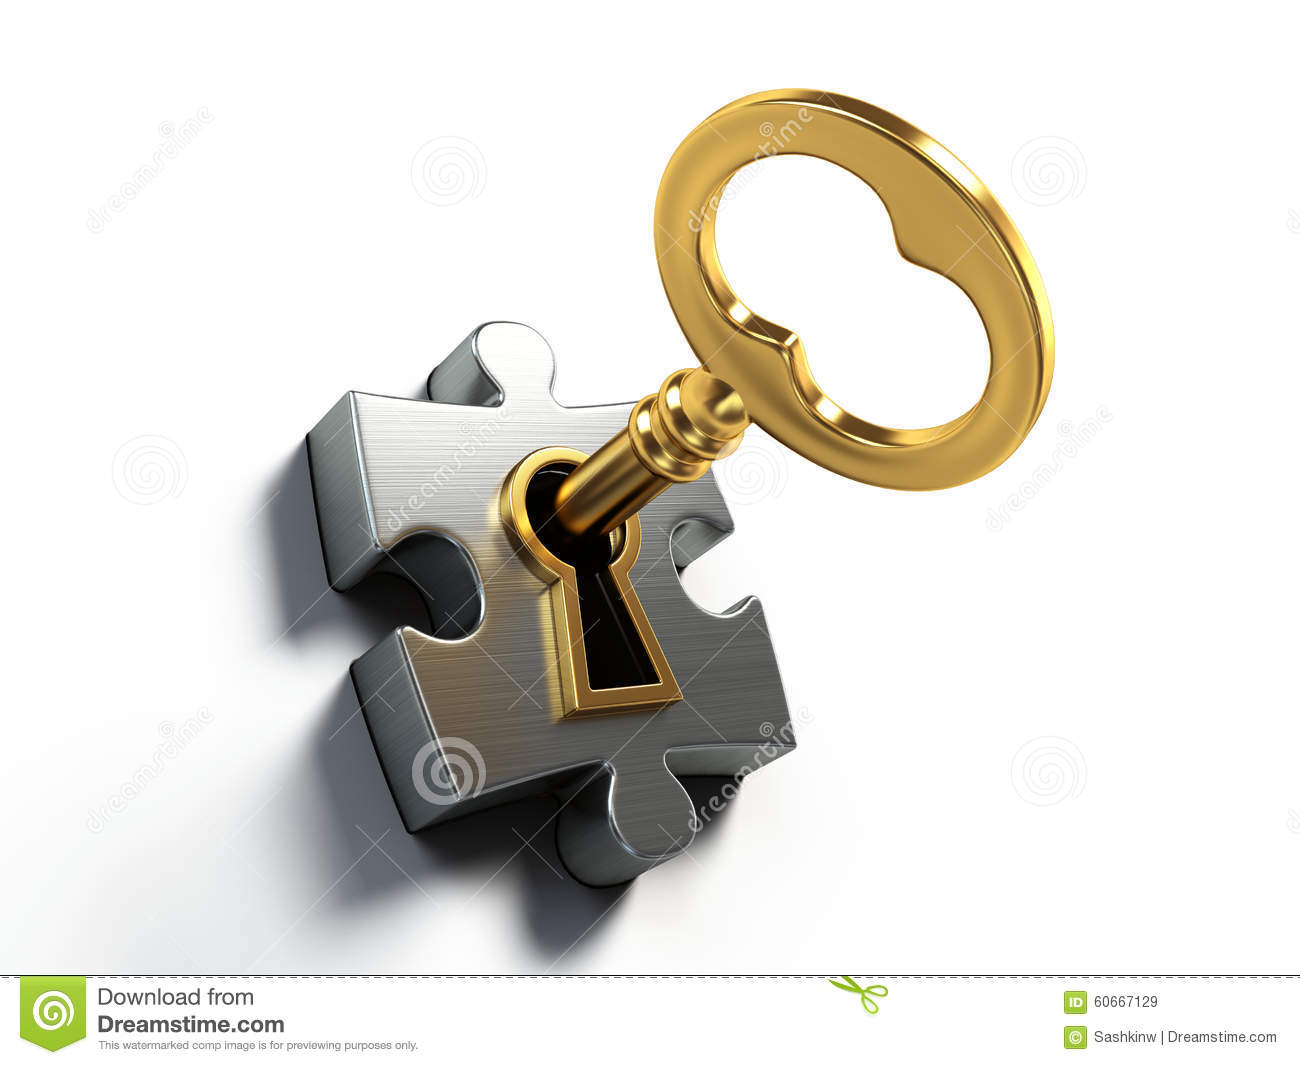 With golden key 3d rendering plan concept with golden key 3d rendering - Key Puzzle Gate Problem Connection Unlock Trust Password Solving Solution Entrance Piece Render Opening Opportunity Concept